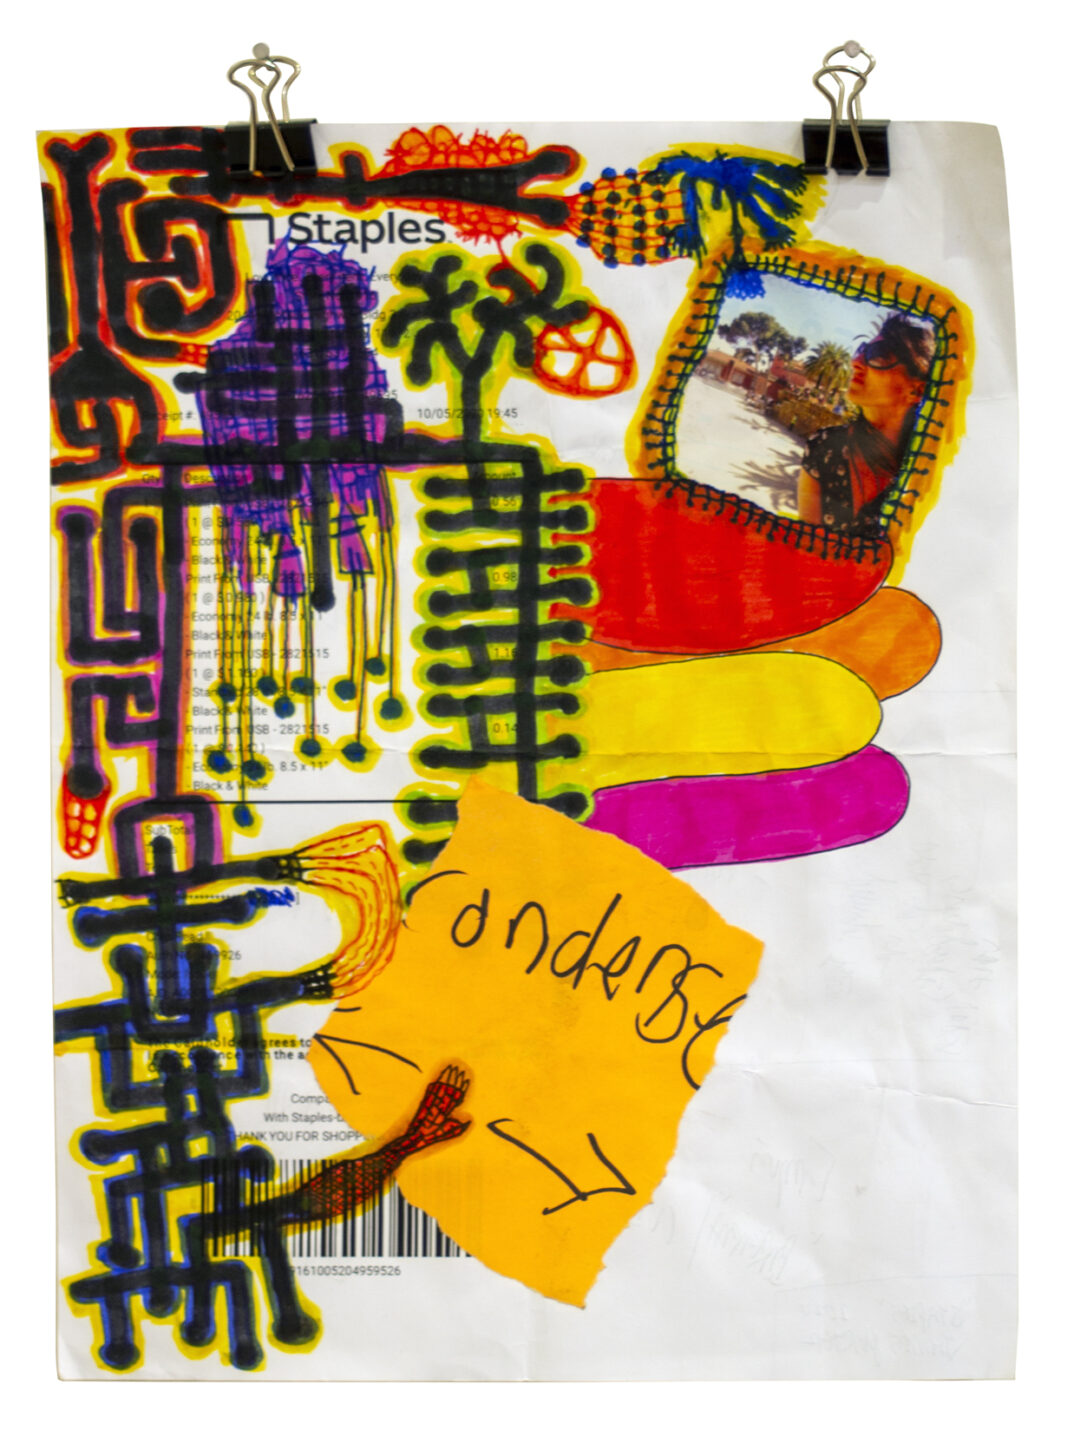 """James Marshall Porter """"Staples"""", mixed media drawing on paper, 8.5"""" x 11,"""" 2020, $125.00"""